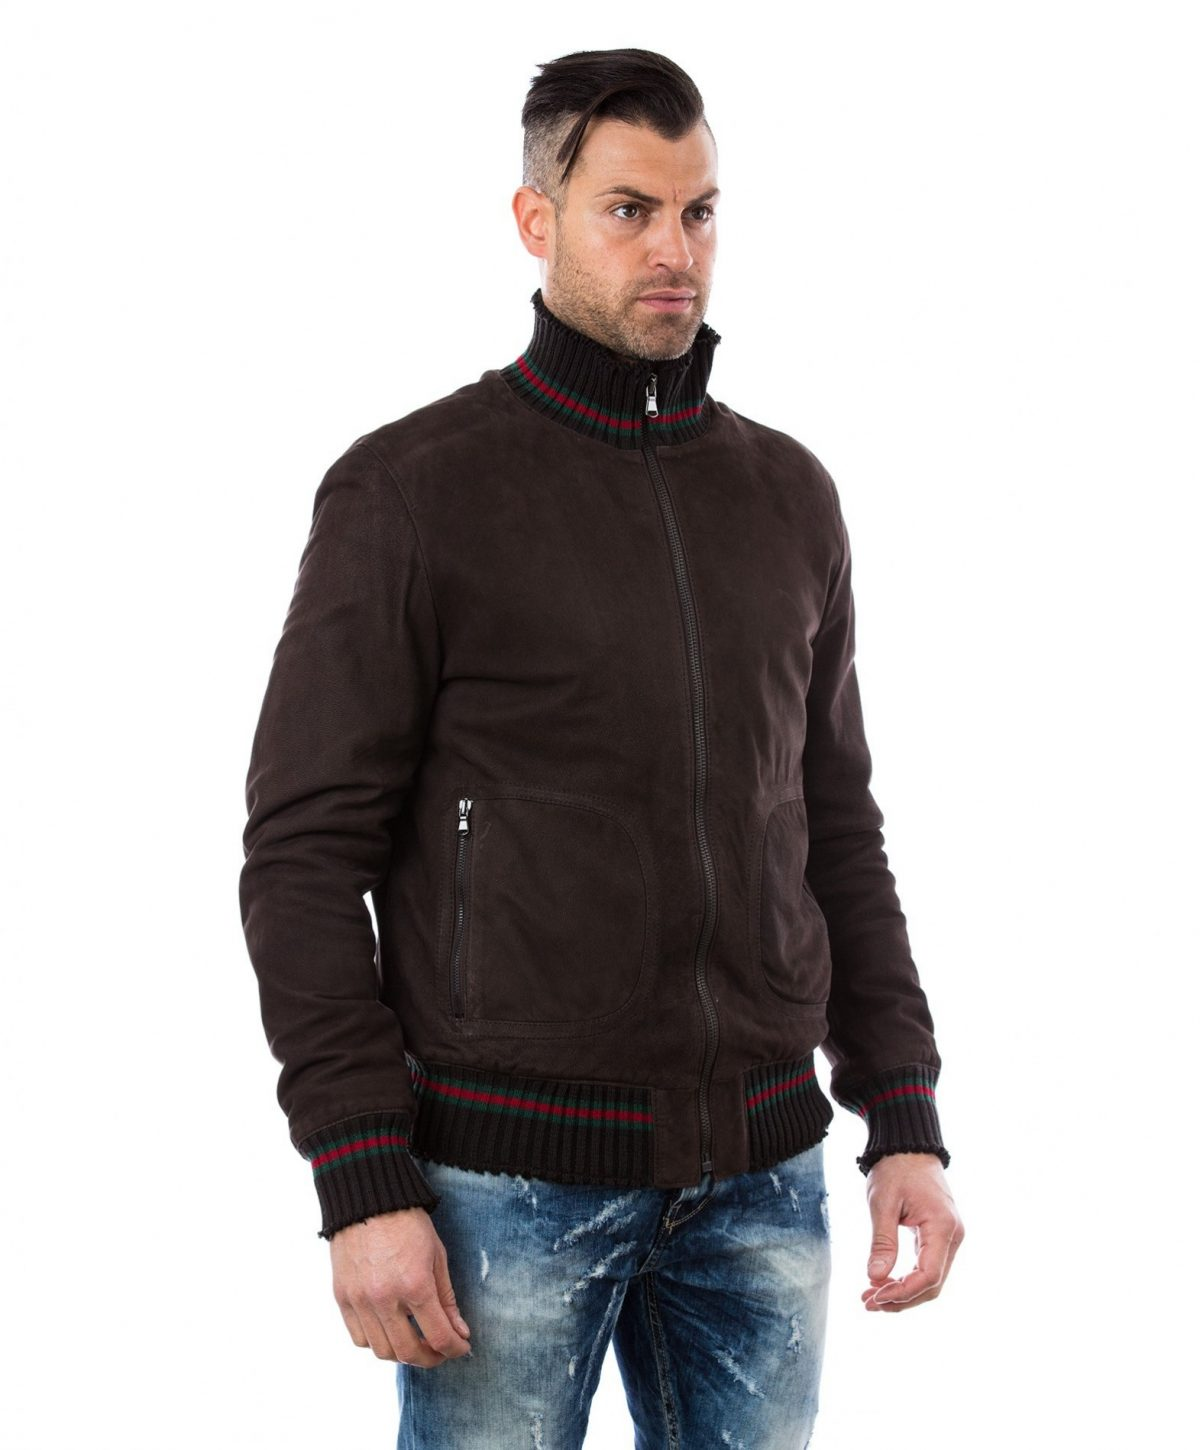 men-s-leather-jacket-genuine-soft-leather-nabuk-style-bomber-wool-cuffs-and-bottom-central-zip-dark-brown-color-mod-vito (1)